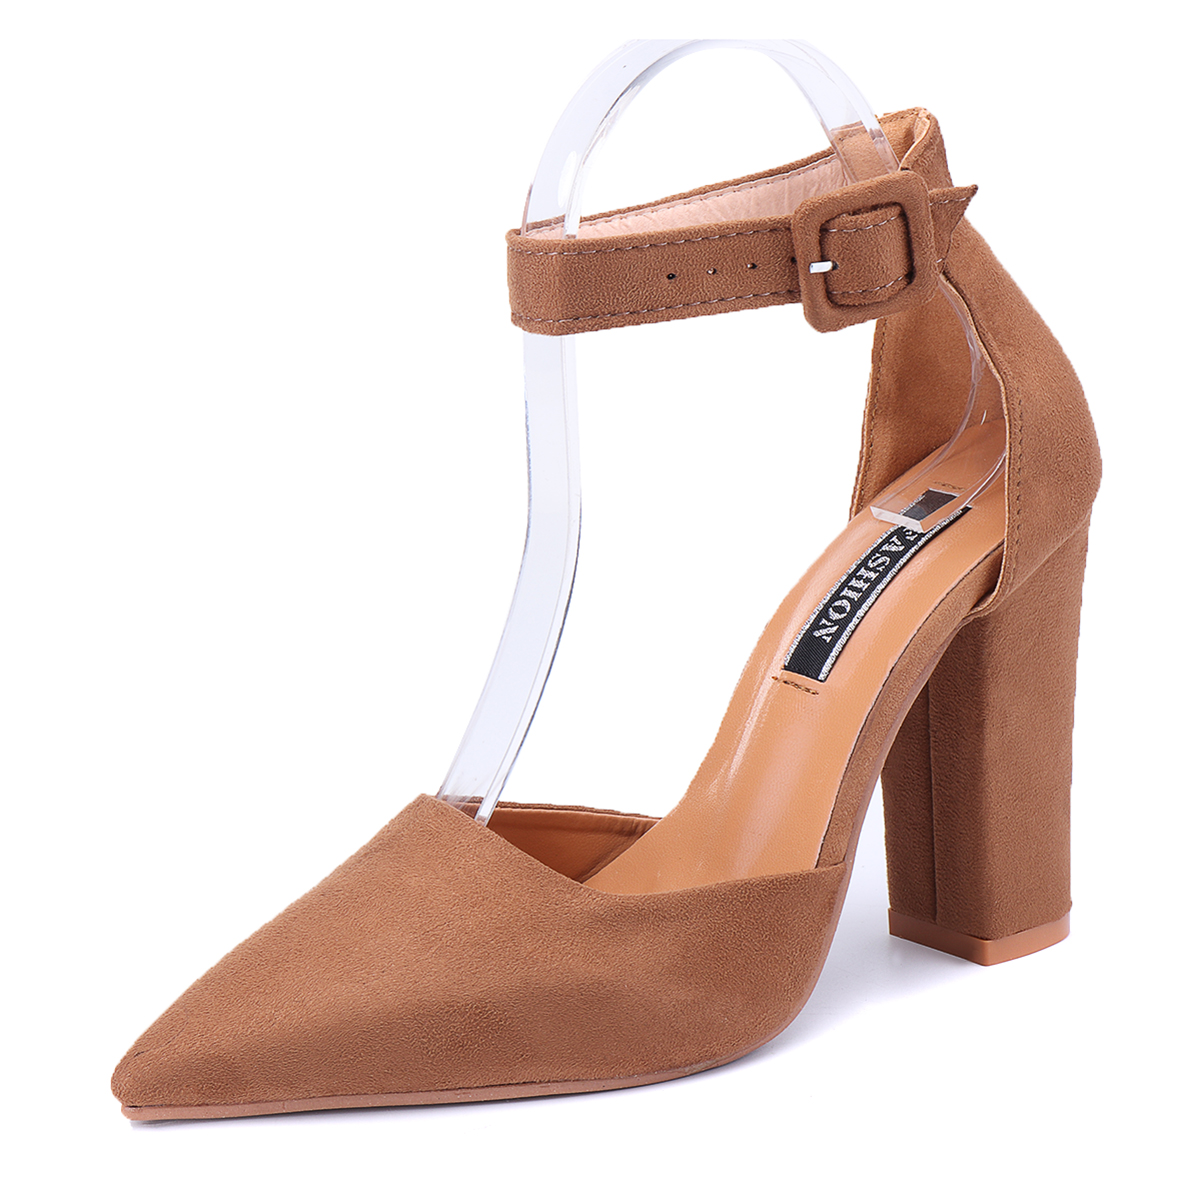 Women-039-s-High-Heels-Block-Toe-Pointed-Ankle-Strap-Sandals-Casual-Buckle-Shoes